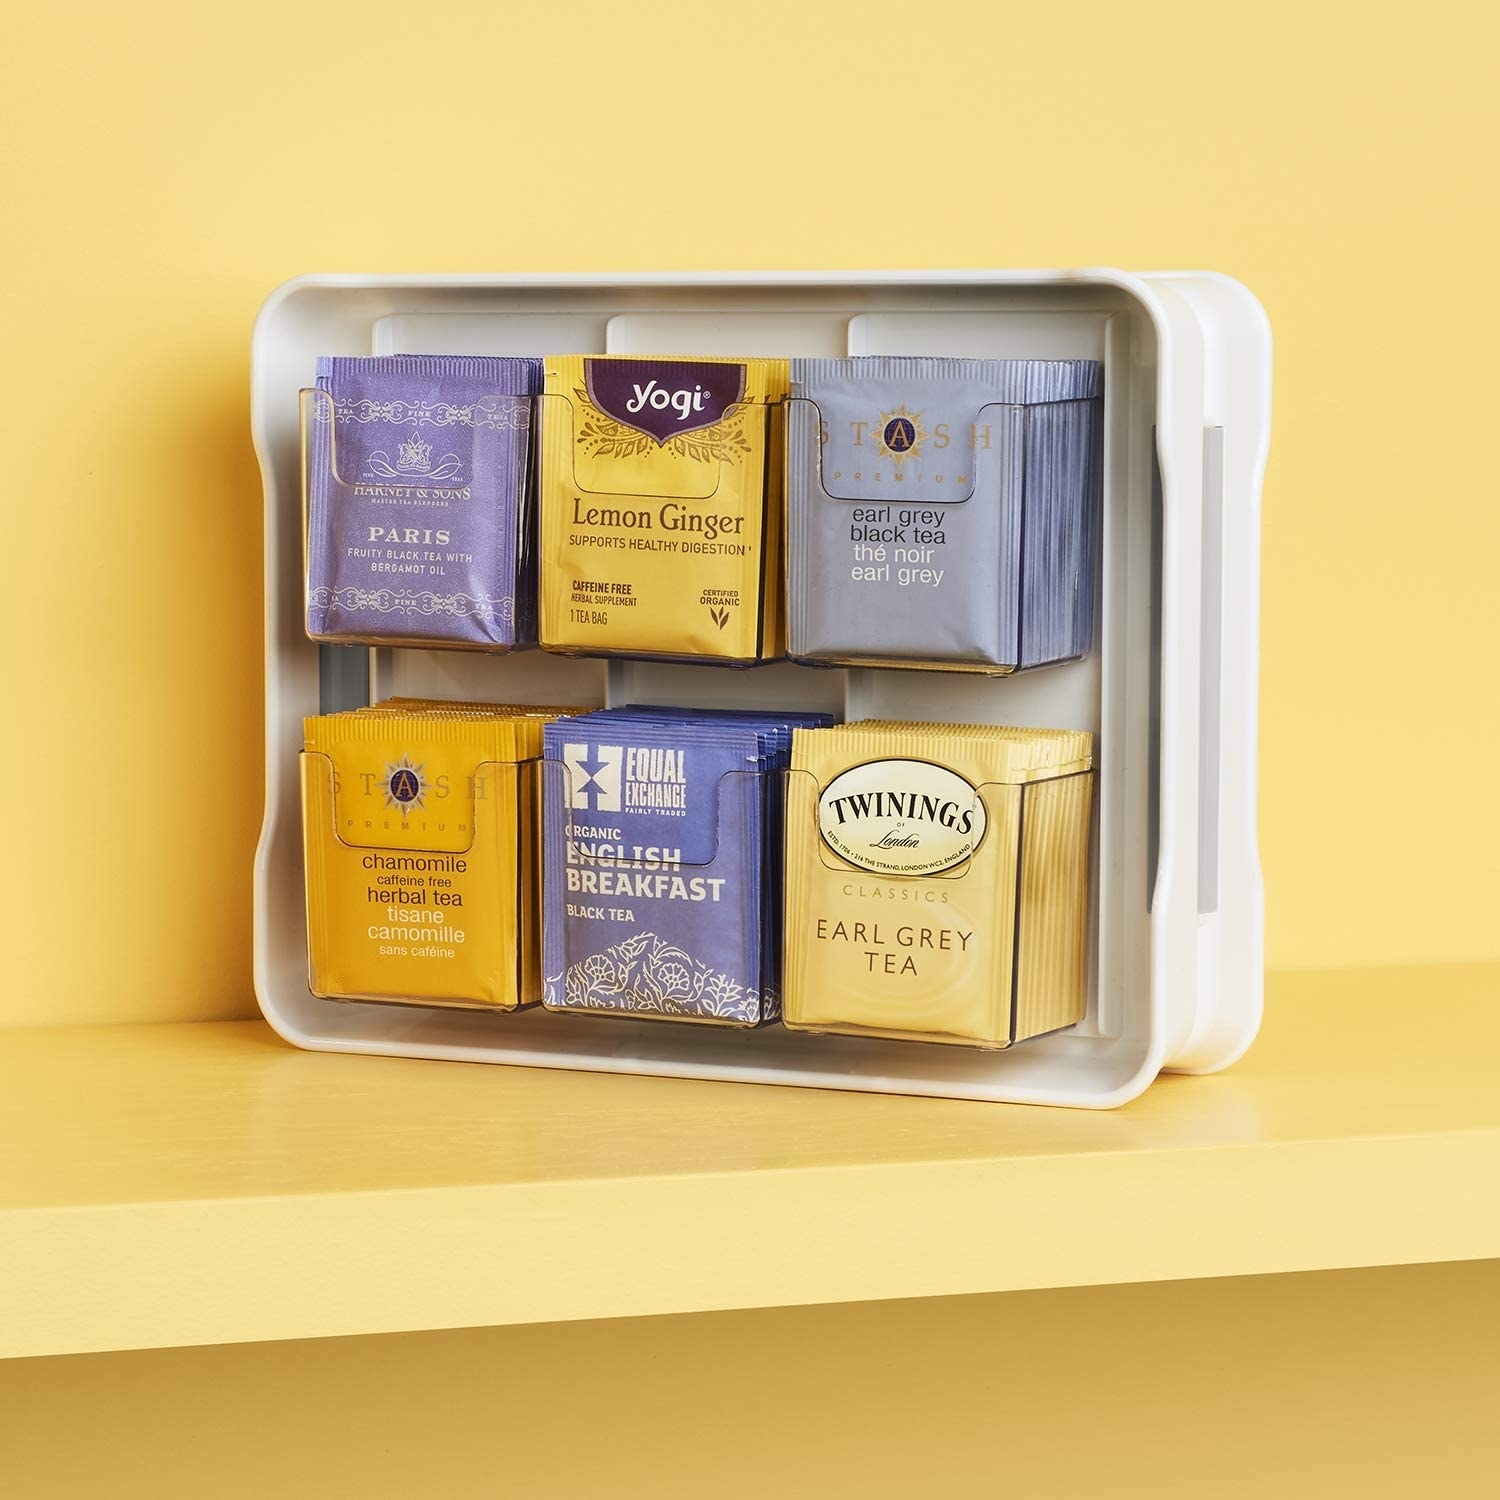 the tea stand filled with tea bags